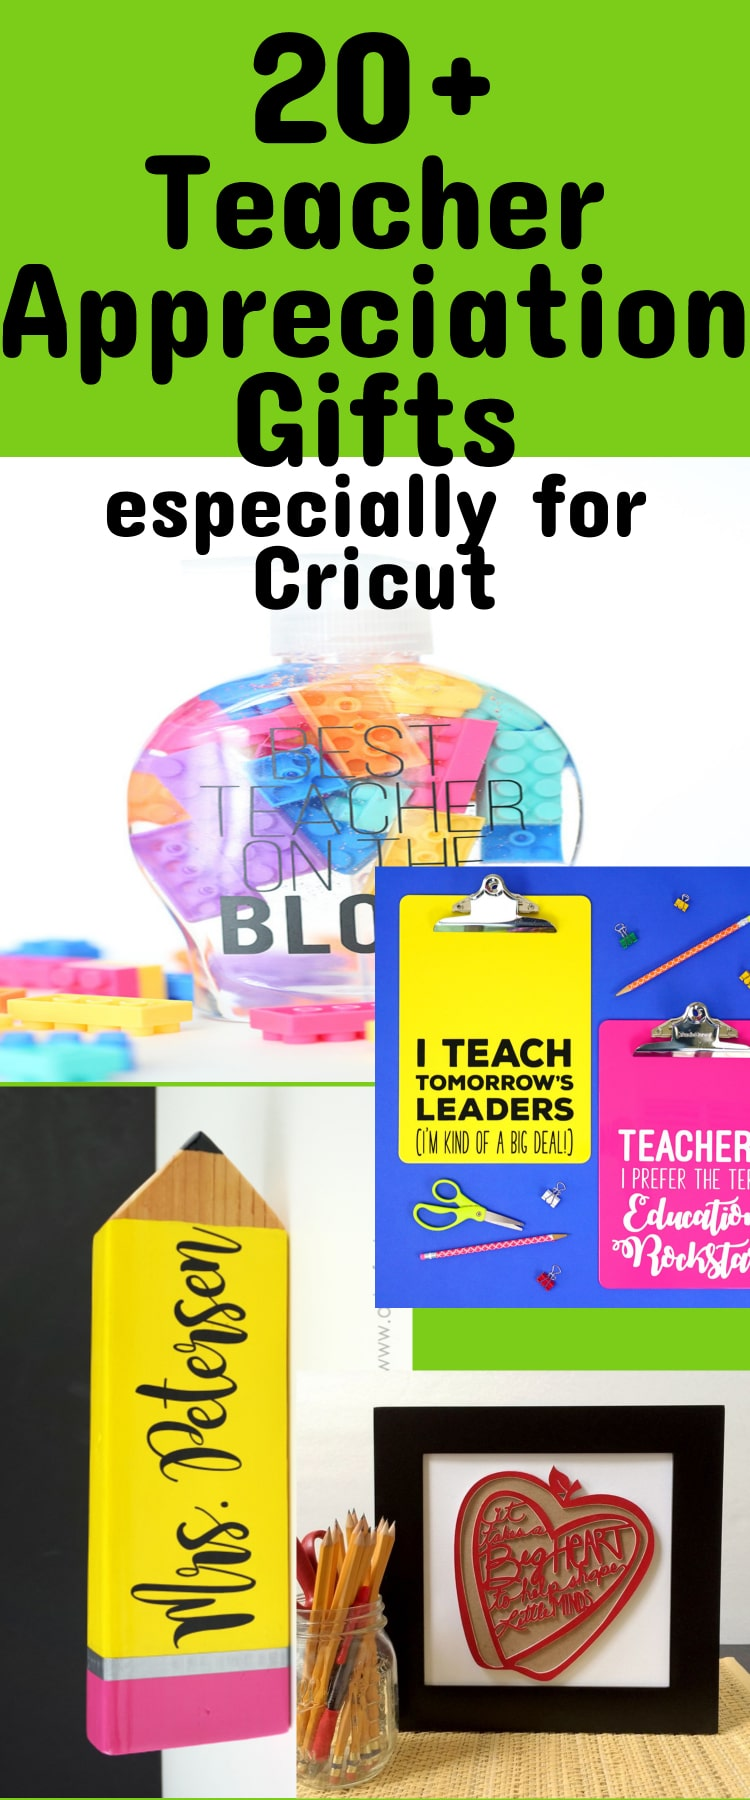 Cricut Teacher Appreciation Gifts